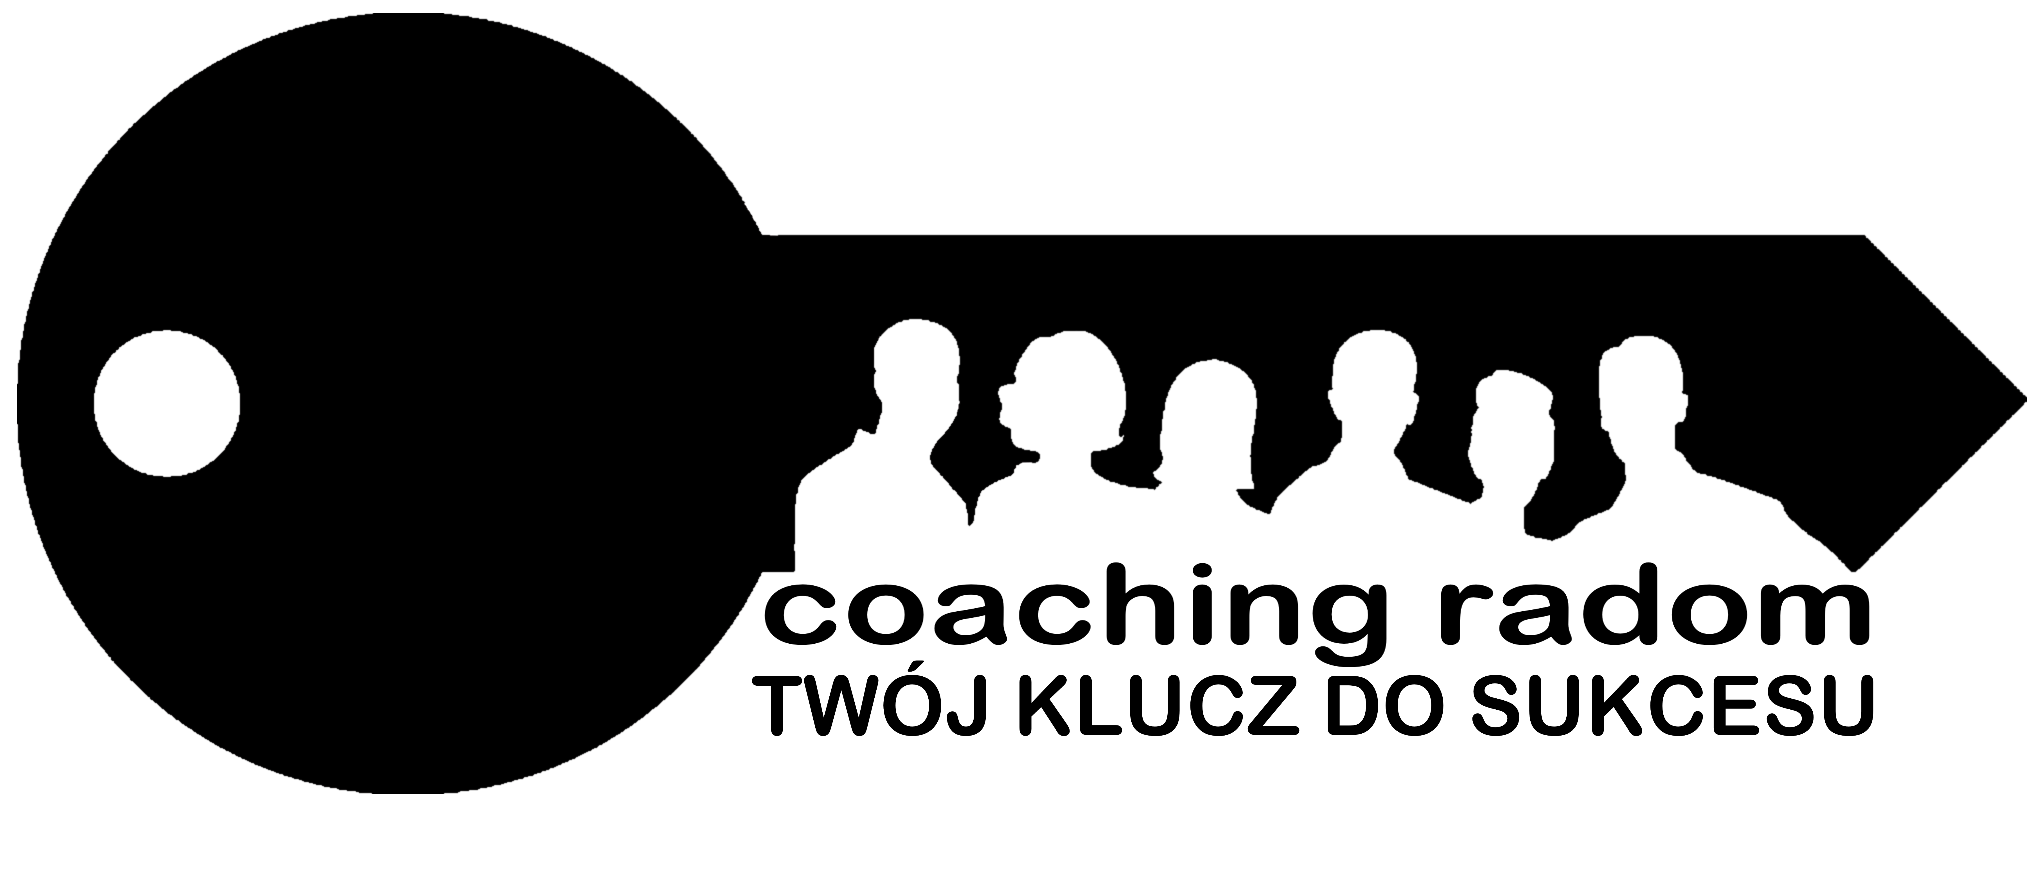 coaching radom